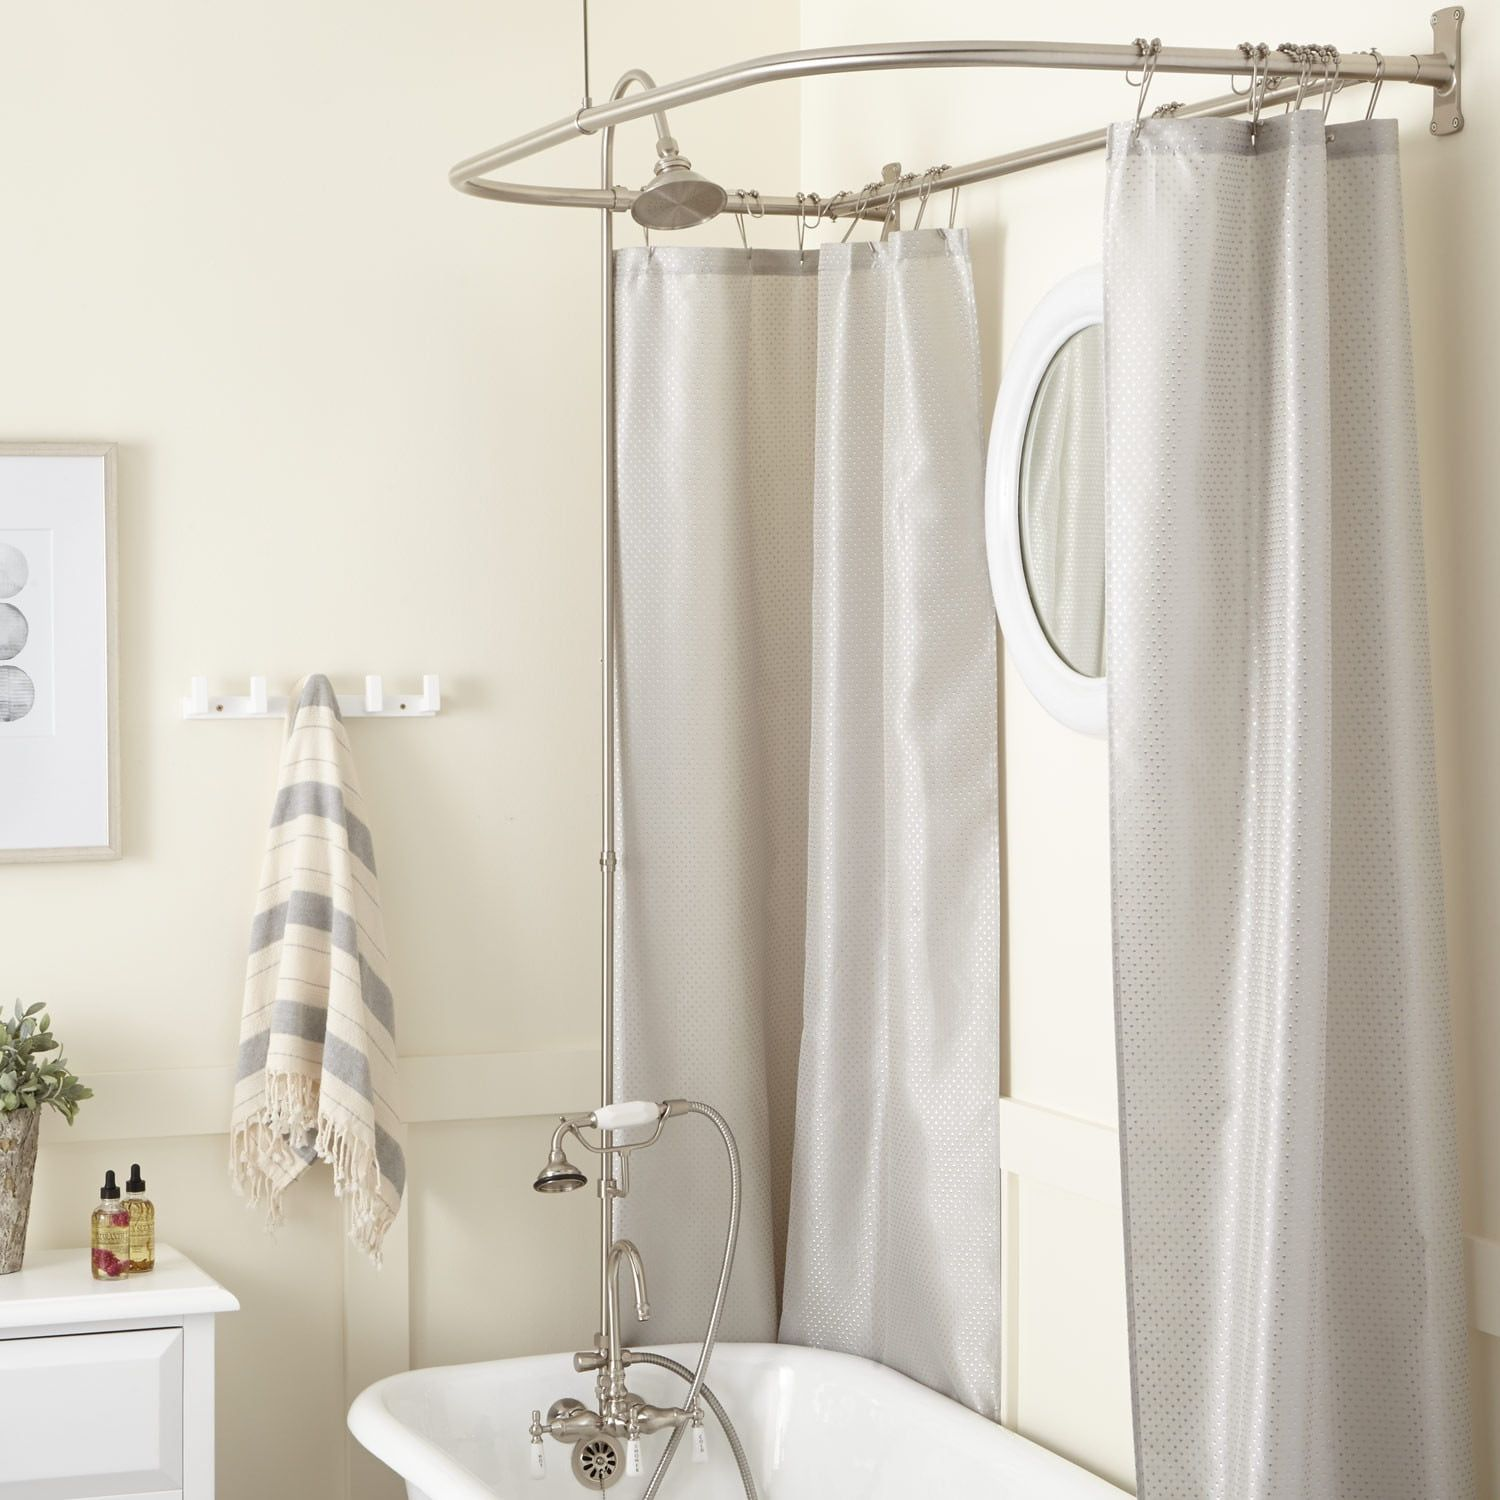 Gooseneck Shower Conversion Kit D Style Shower Ring With Hand